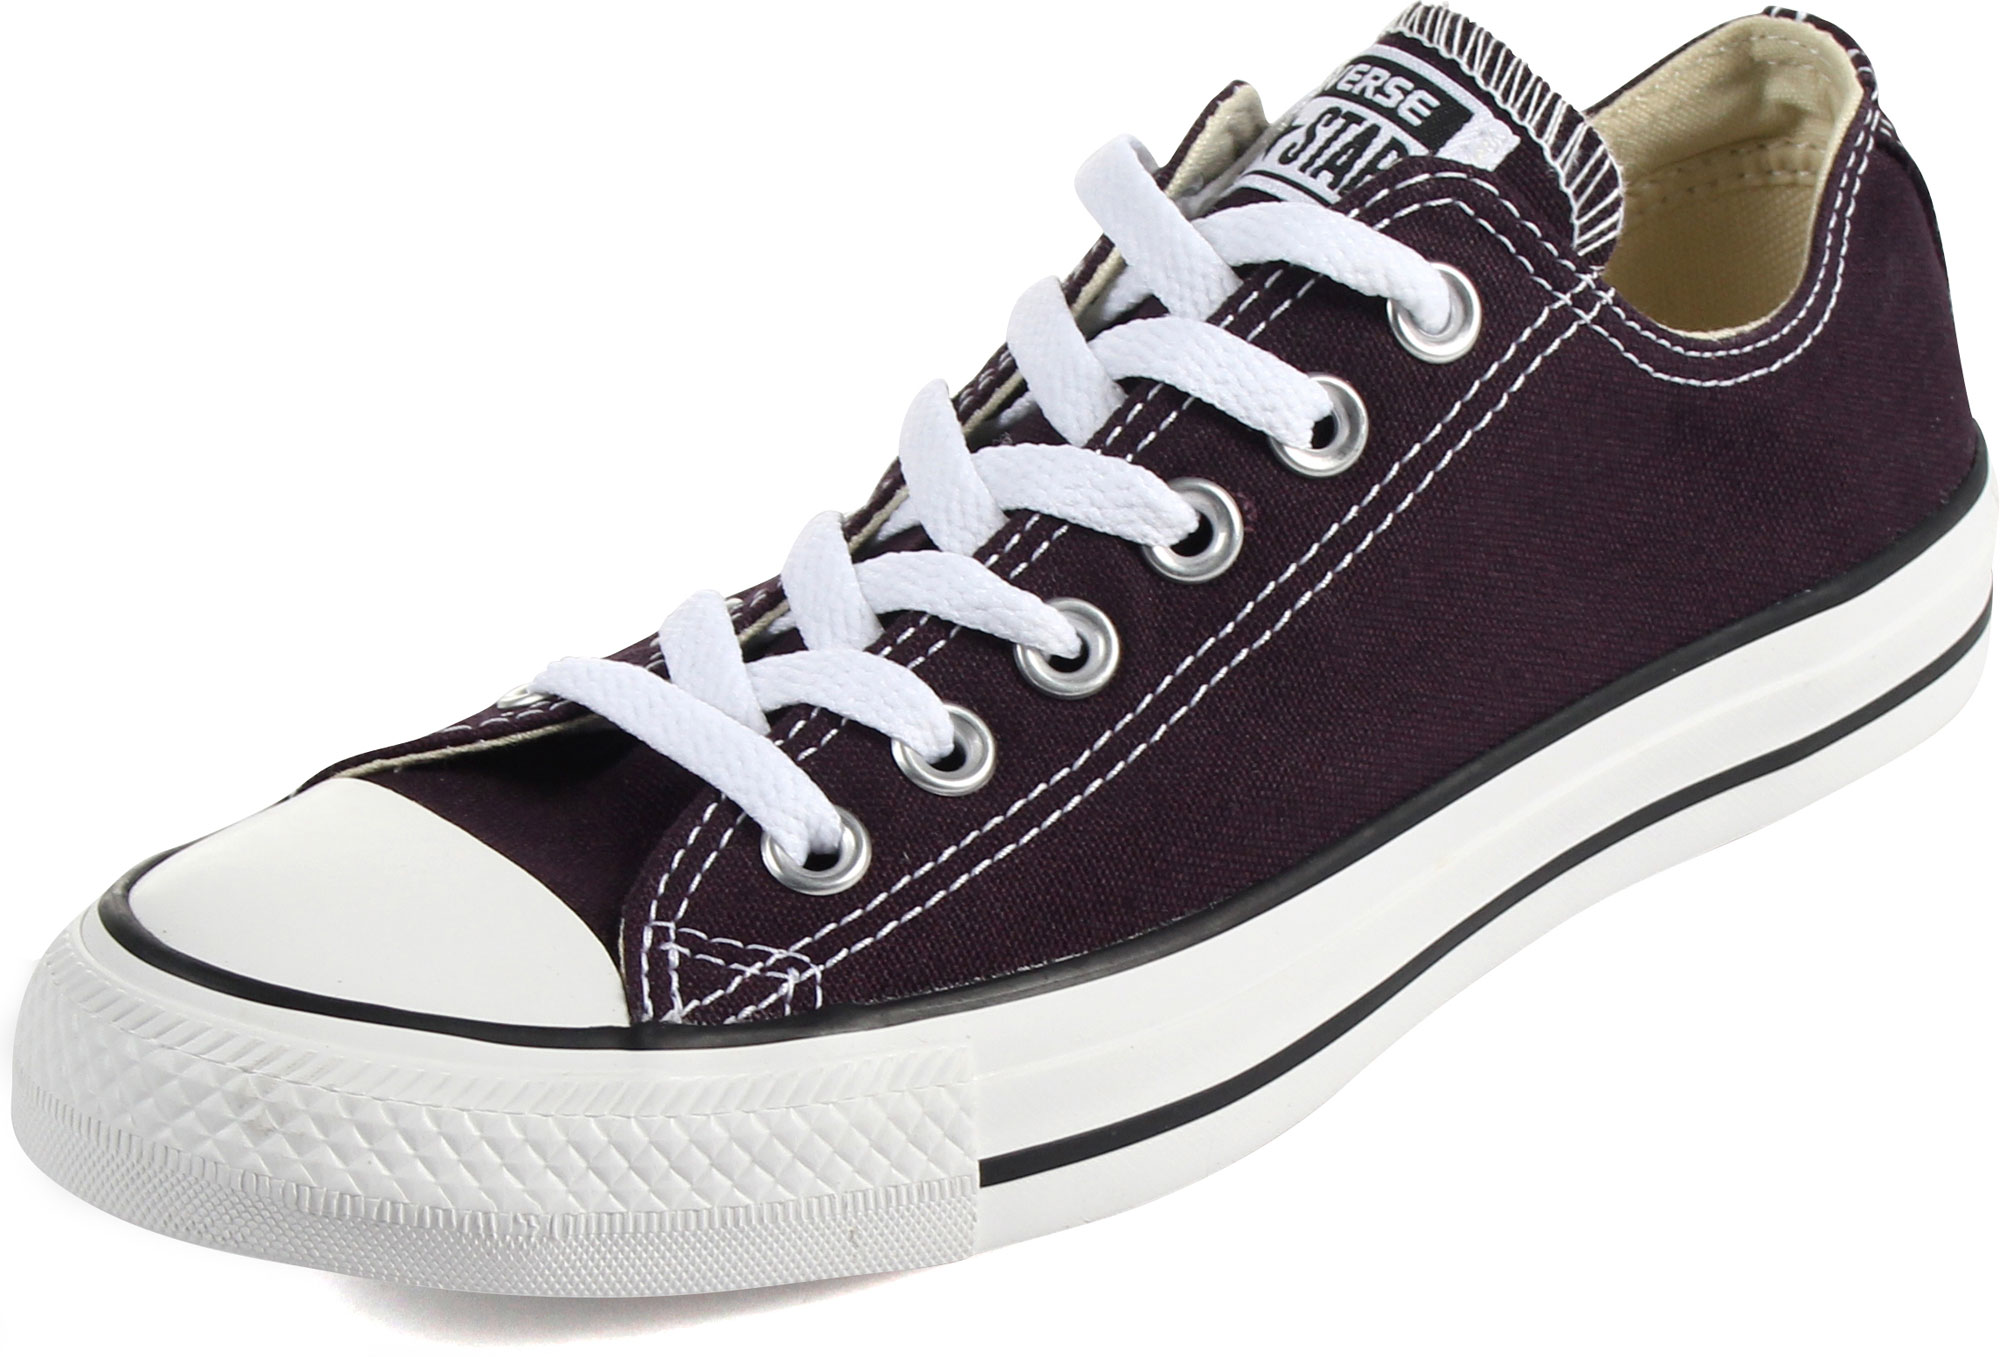 f77446a10cd174 Converse - Chuck Taylor All Star Black Cherry Low top Shoes